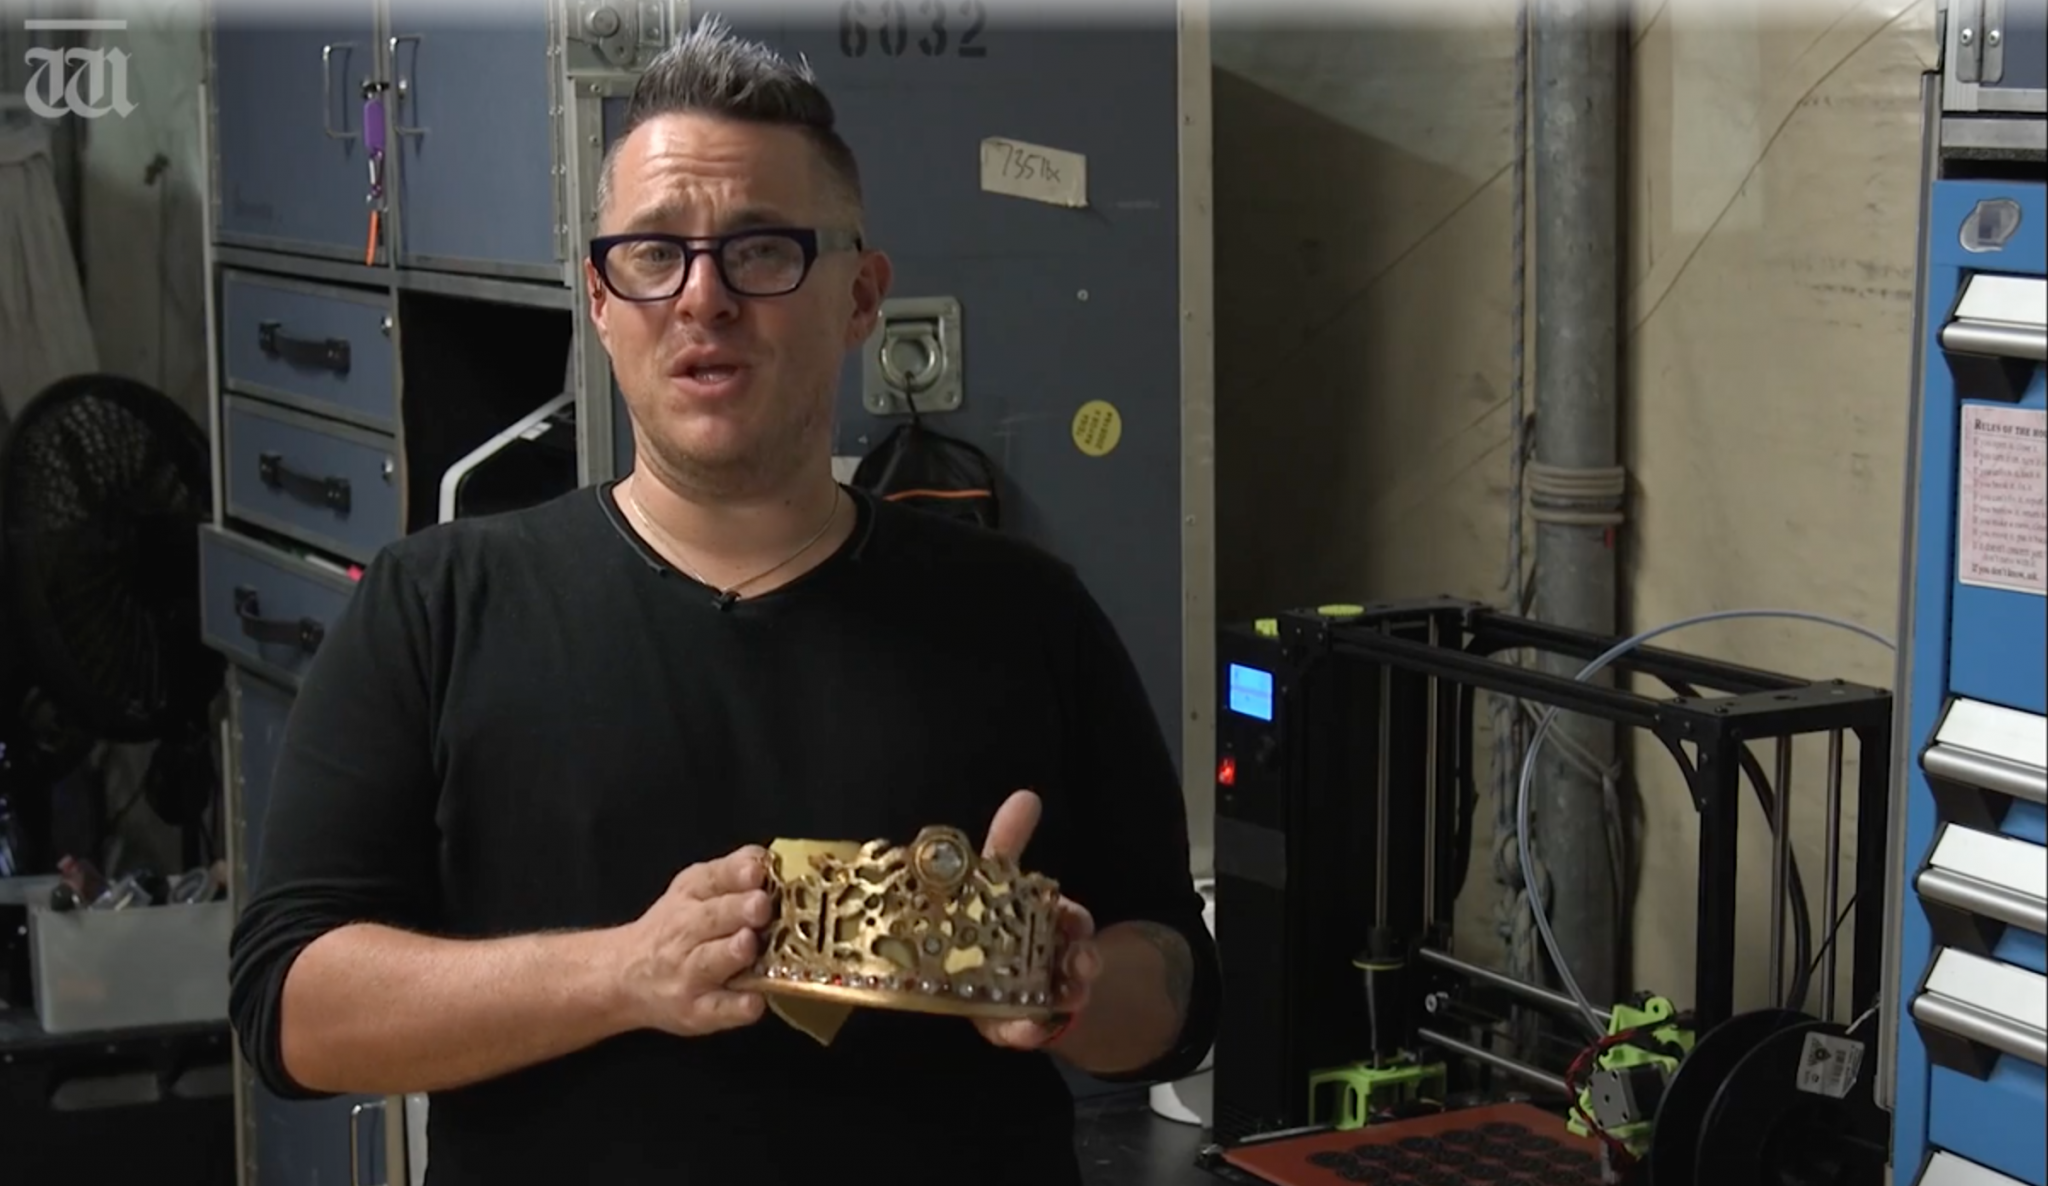 Cirque du Soleil head of wardrobe Jason Brass shows the 3D printed crown.Screenshot via The West Australian